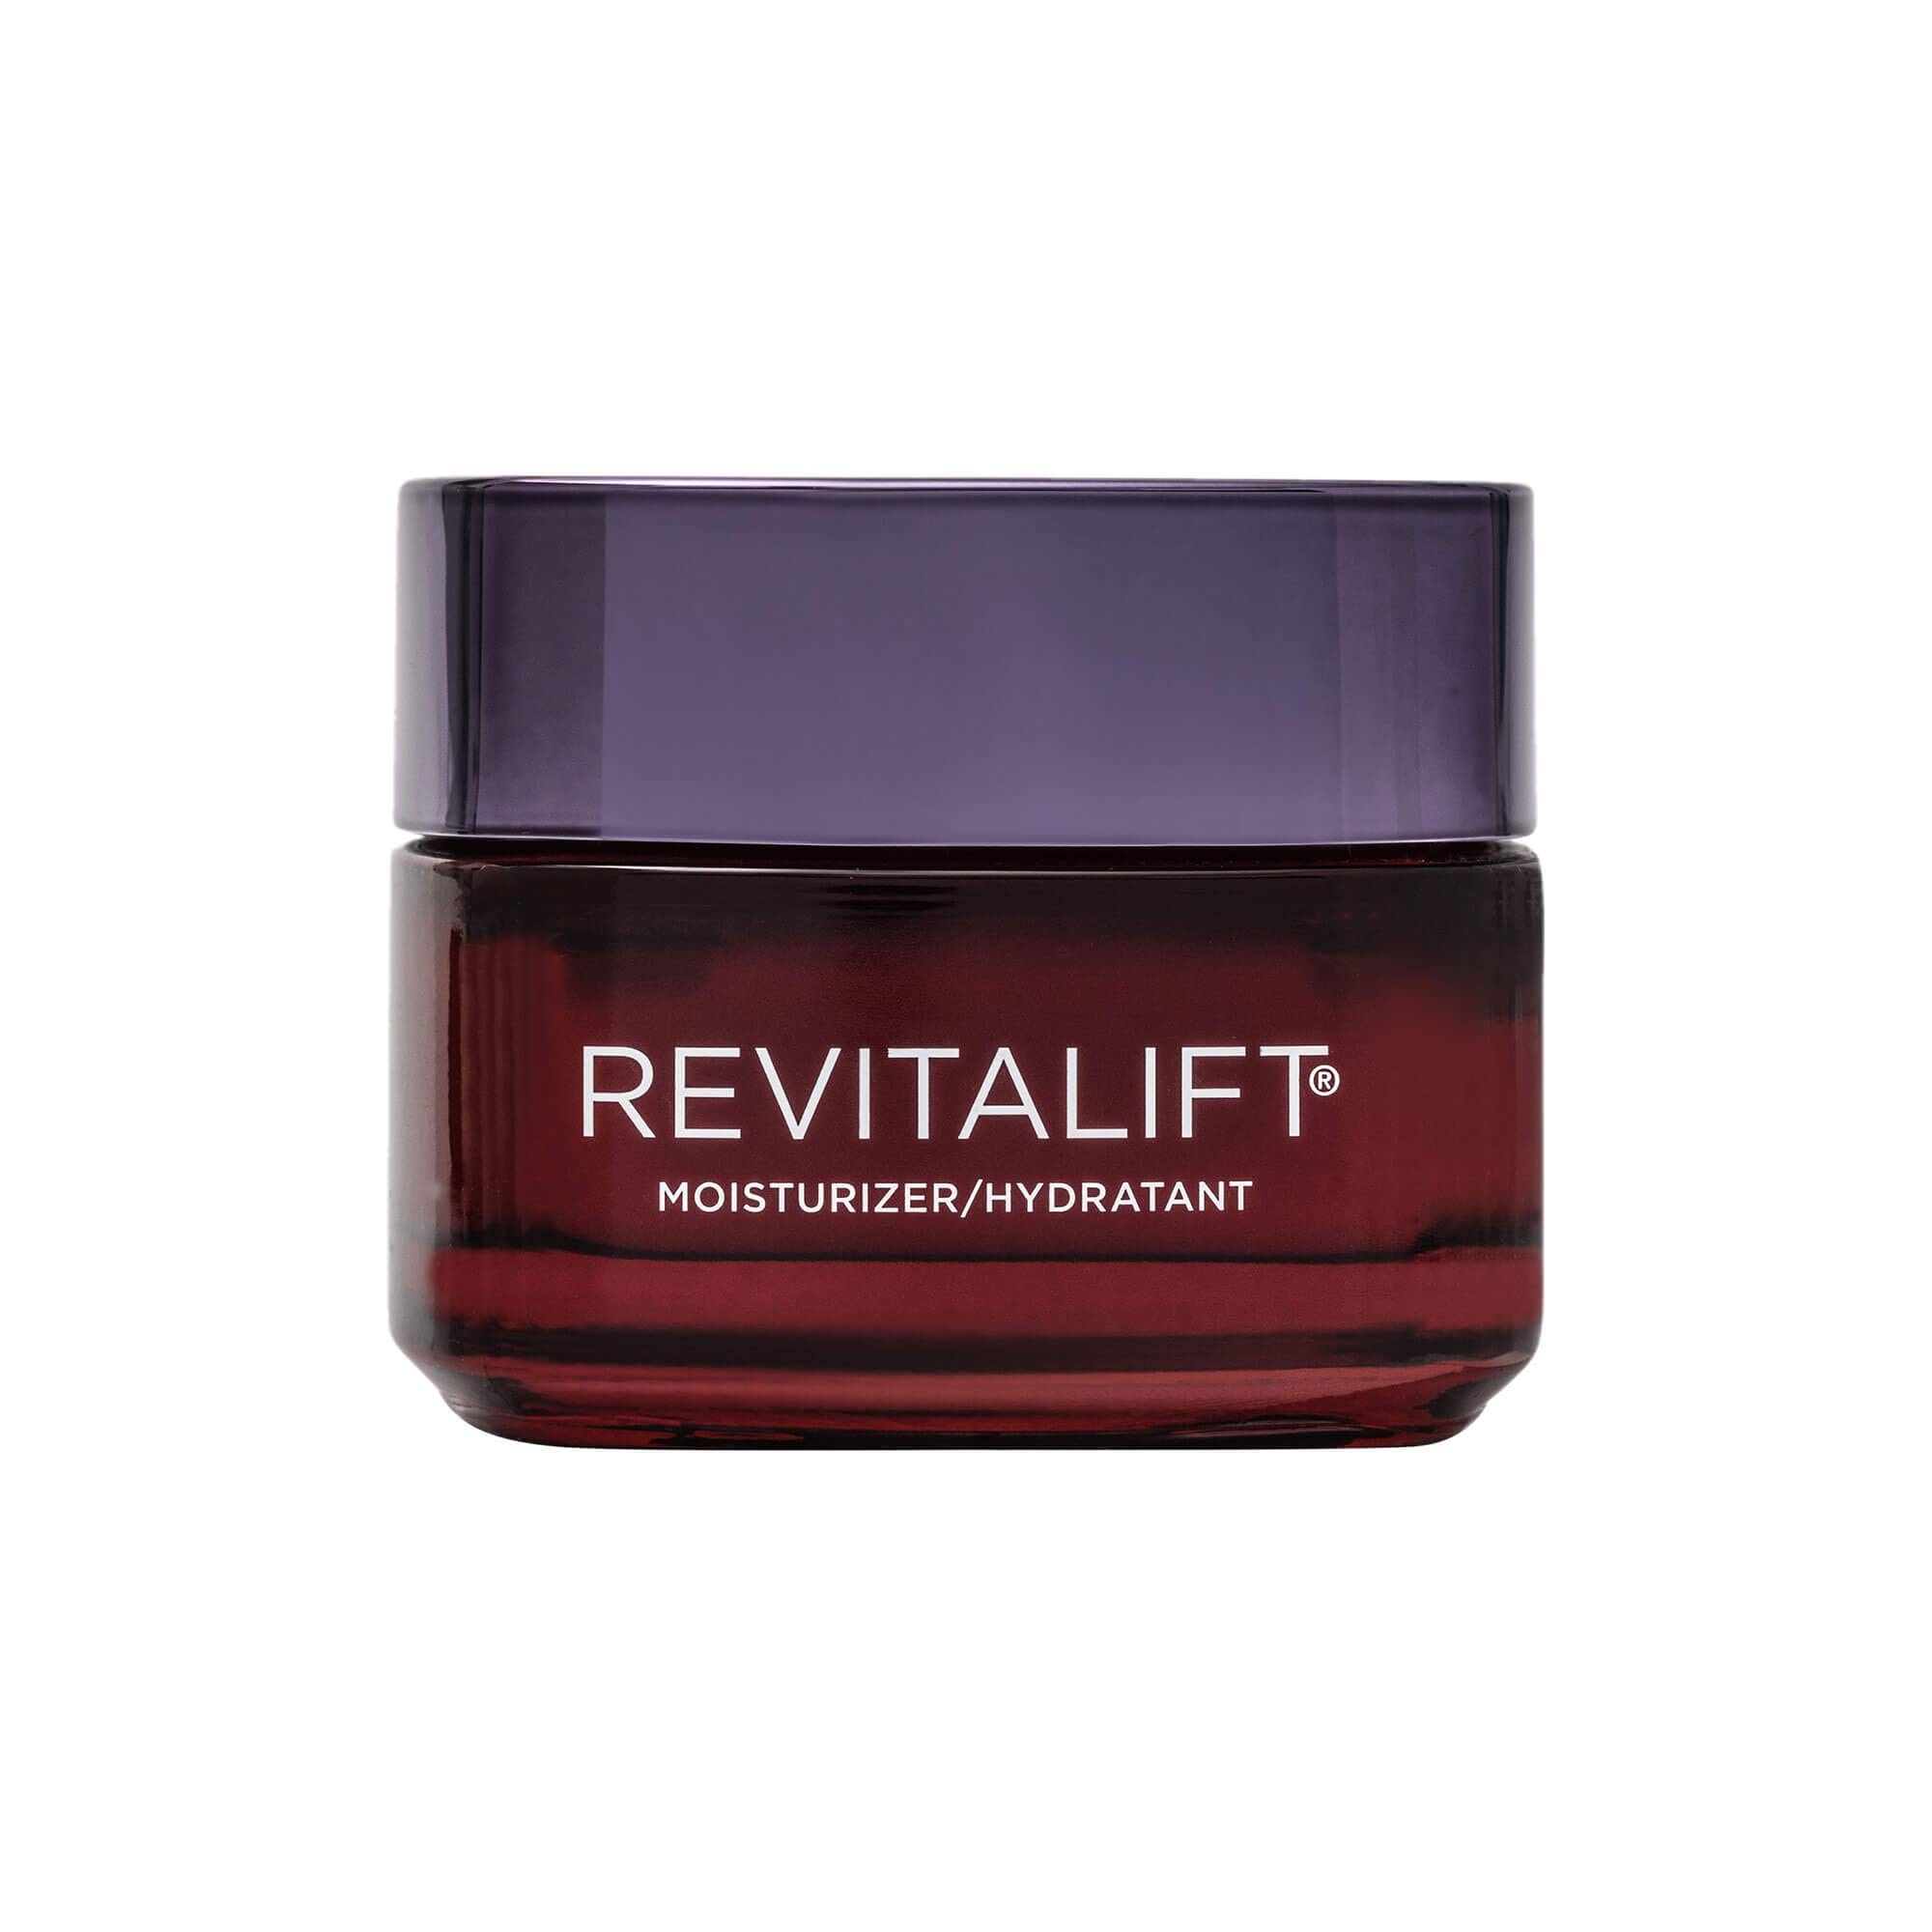 L'Oréal Paris Revitalift Triple Power Intensive Anti-Aging Moisturizer, 1.7 oz.